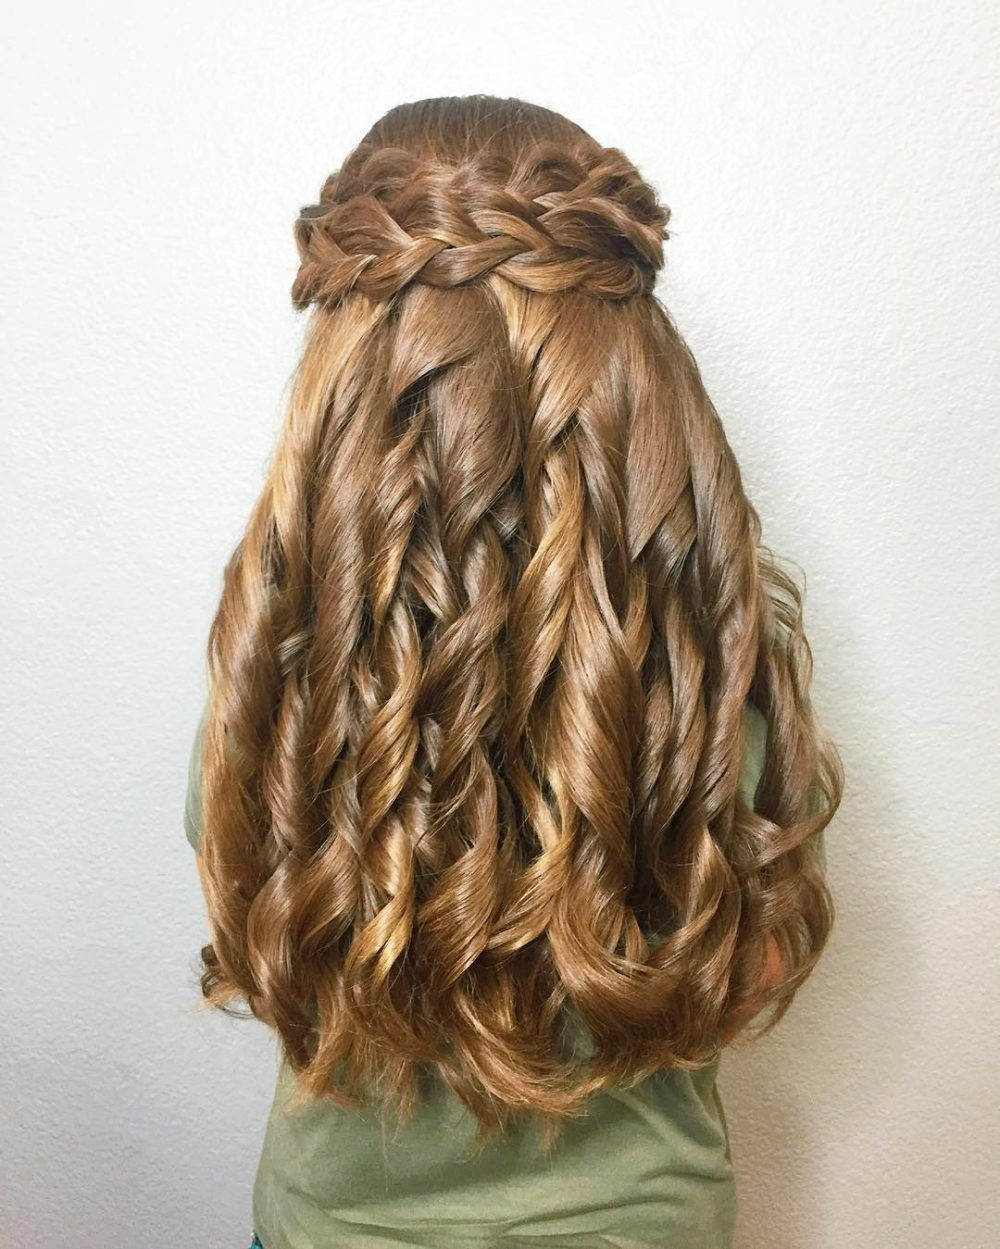 23 Cute Prom Hairstyles For 2020 Updos Braids Half Ups Down Dos Cute Prom Hairstyles Braided Prom Hair Long Hair Styles